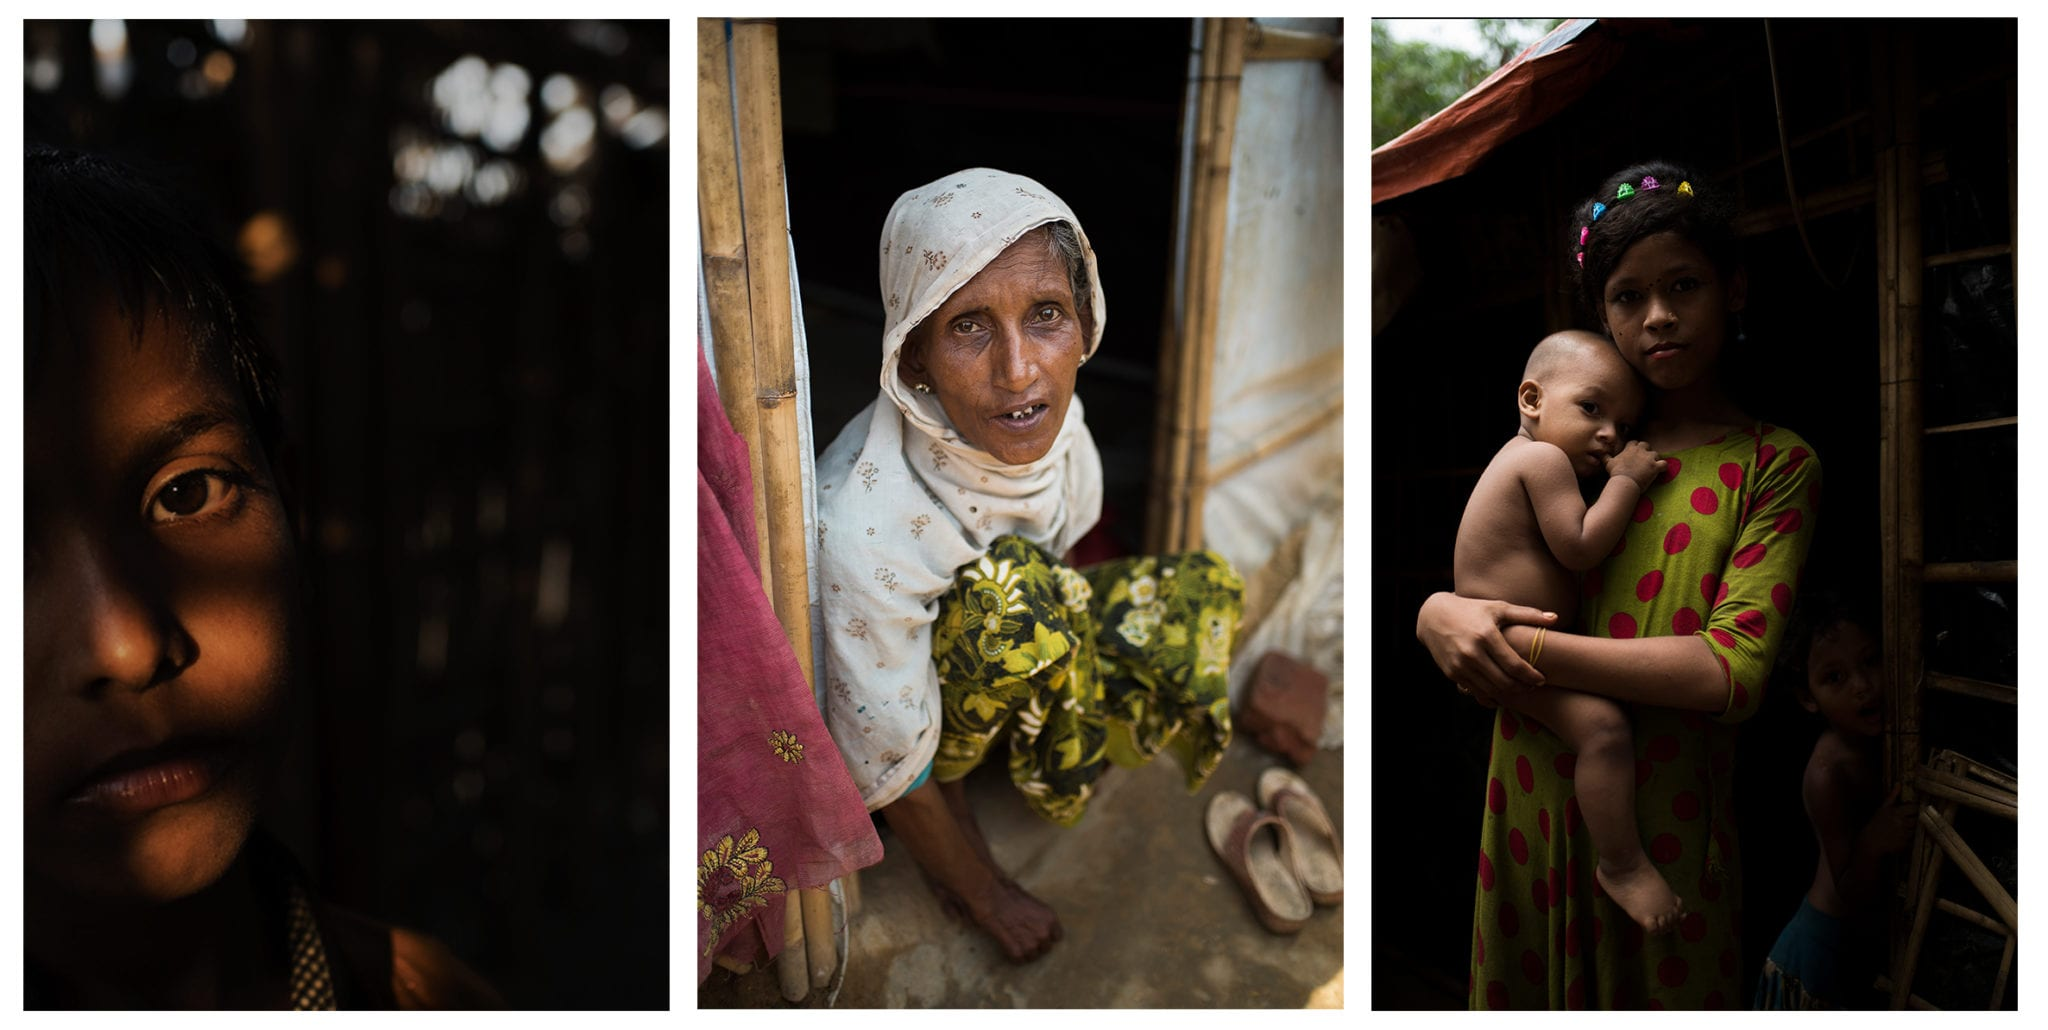 Rohingya women face additional challenges adjusting to conditions on the camps. © |Hailey Sadler